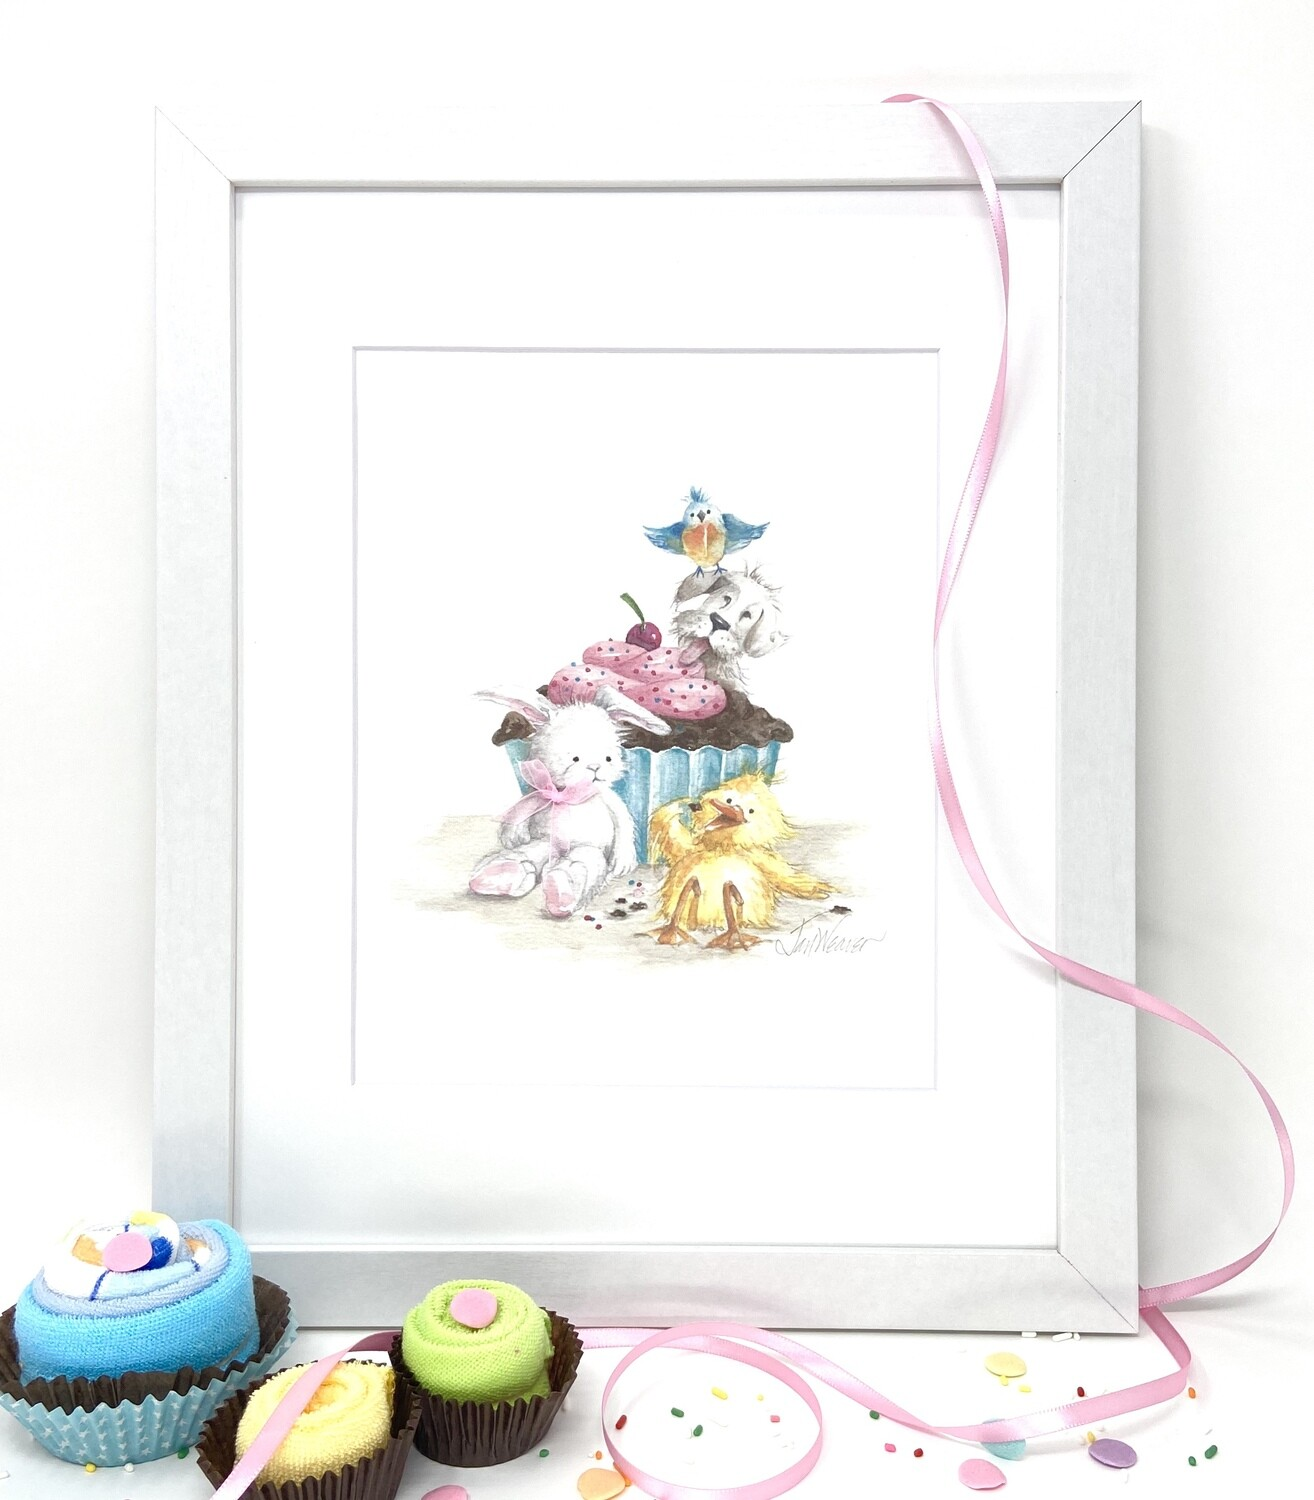 Nursery and Children's Art Print -Framed and Signed -ALWAYS SWEETER WITH FRIENDS